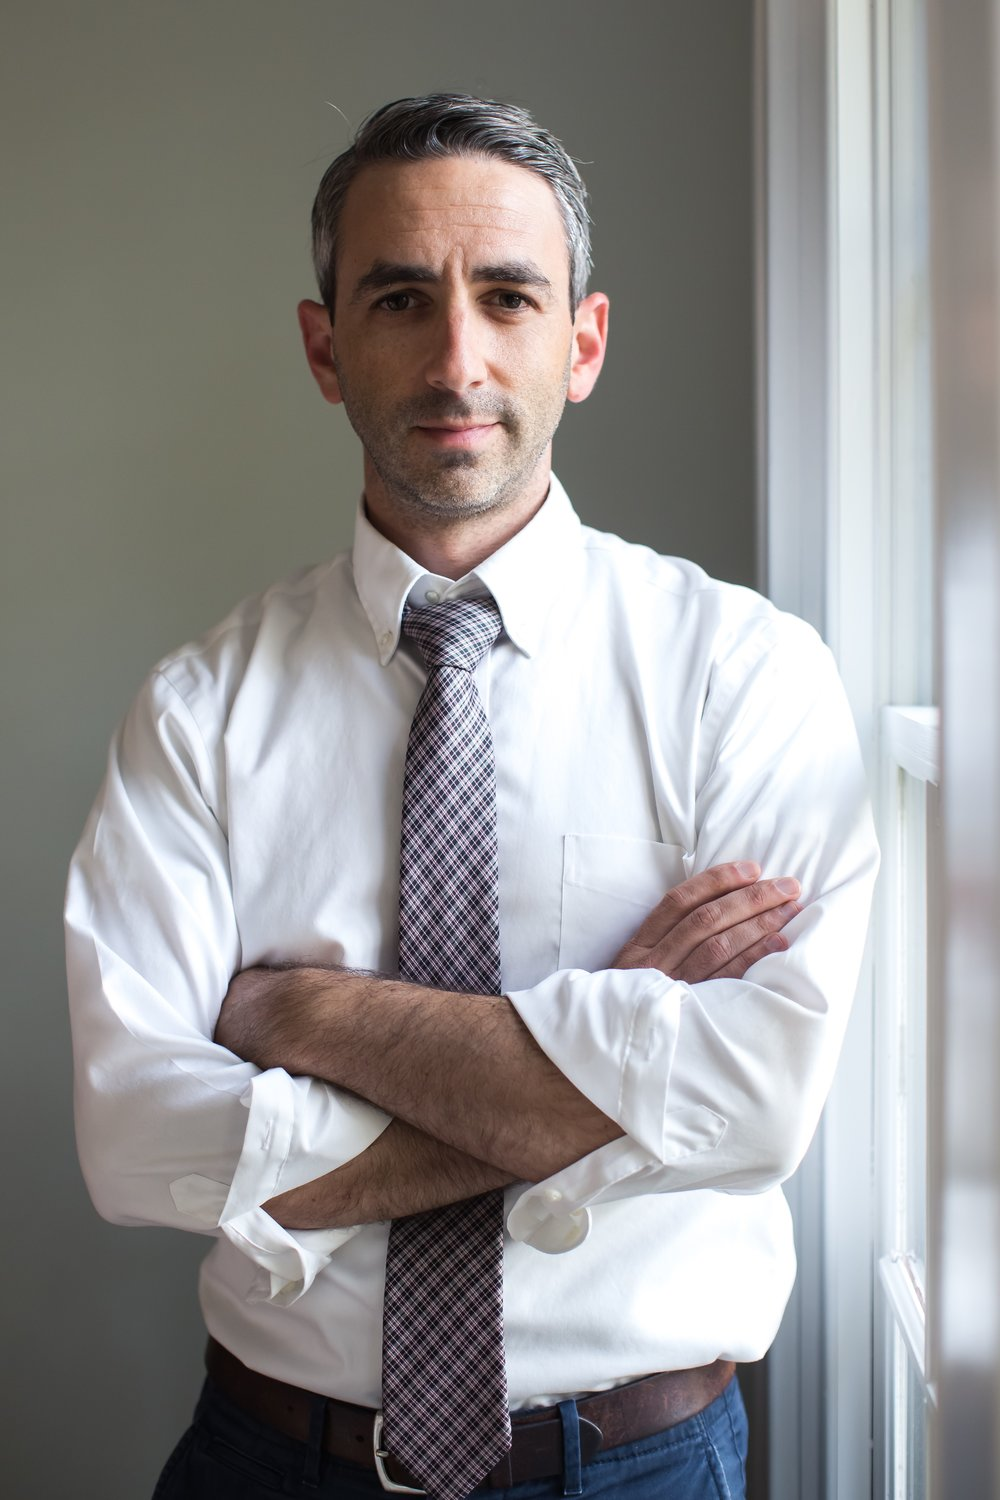 Matthew Kayser, MD,PhD   Assistant Professor